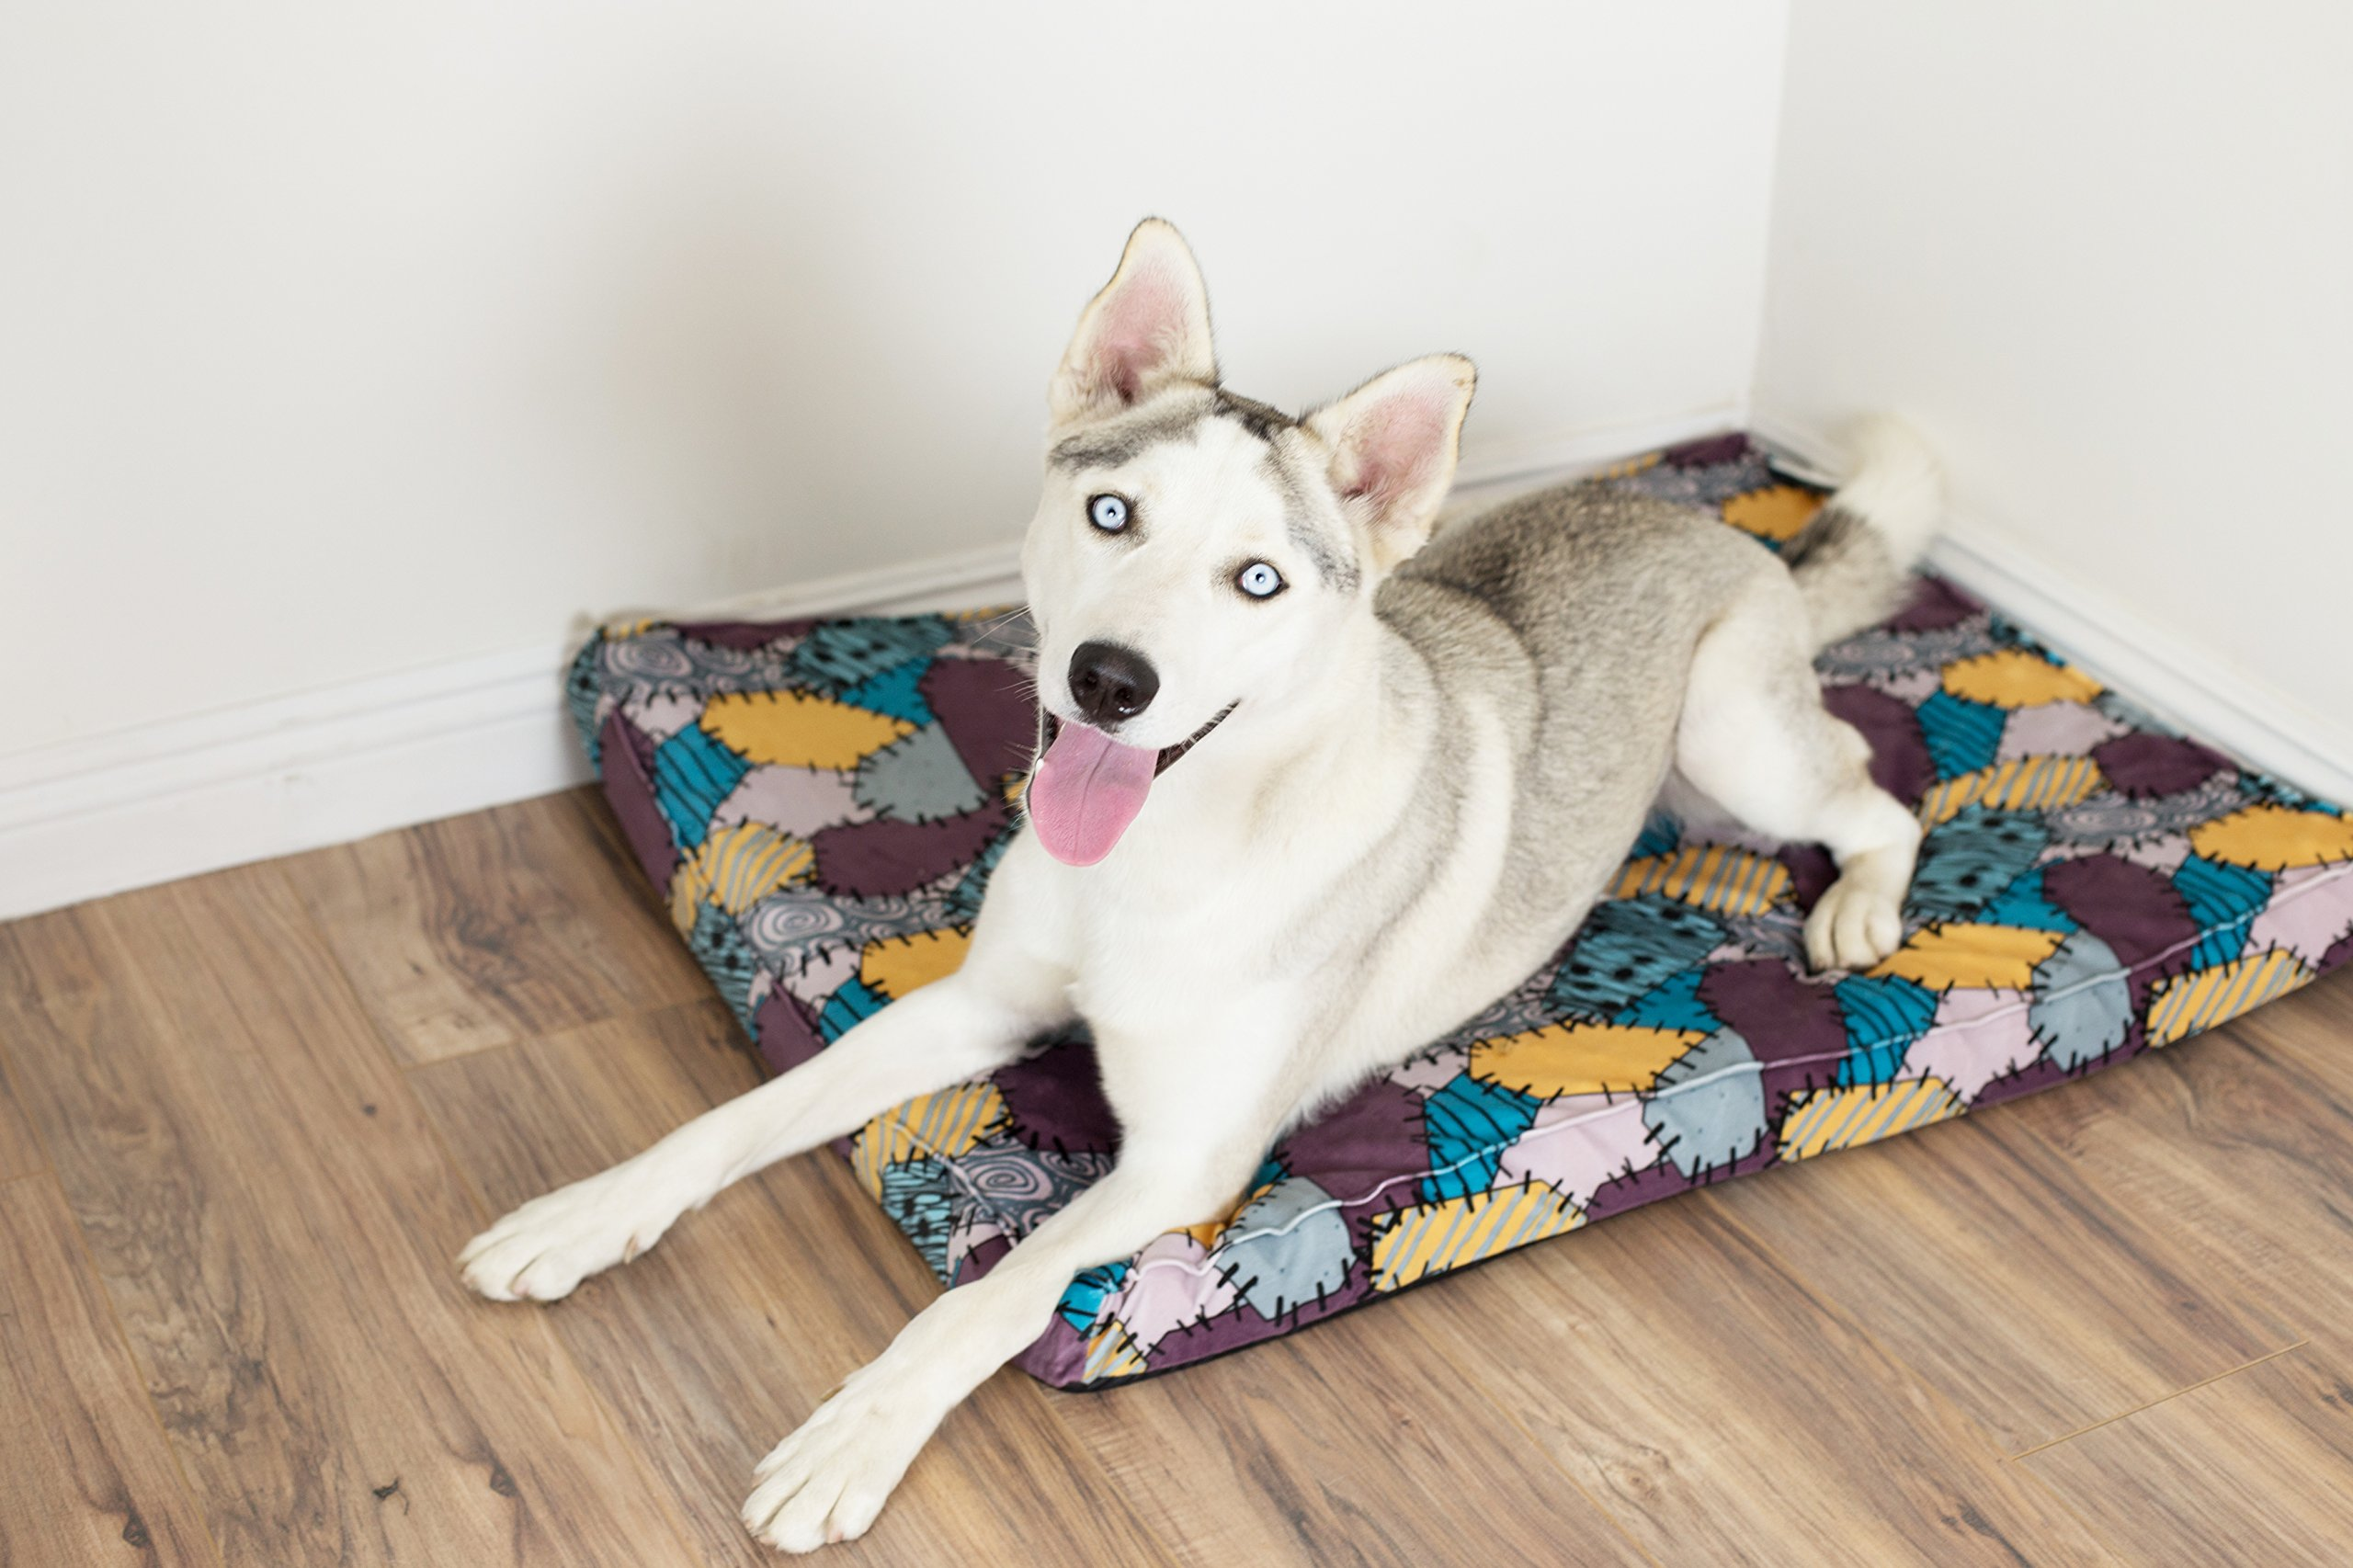 """Disney Nightmare Before Christmas Sally Orthopedic 2.5'' Joint Relief Breathable Dog Bed/Dog Mattress/Crate Mat, 27 x 36 x 2.5"""", Made with High-Density CertiPUR Foam, Dirt/Water Resistant Bottom by Disney (Image #2)"""